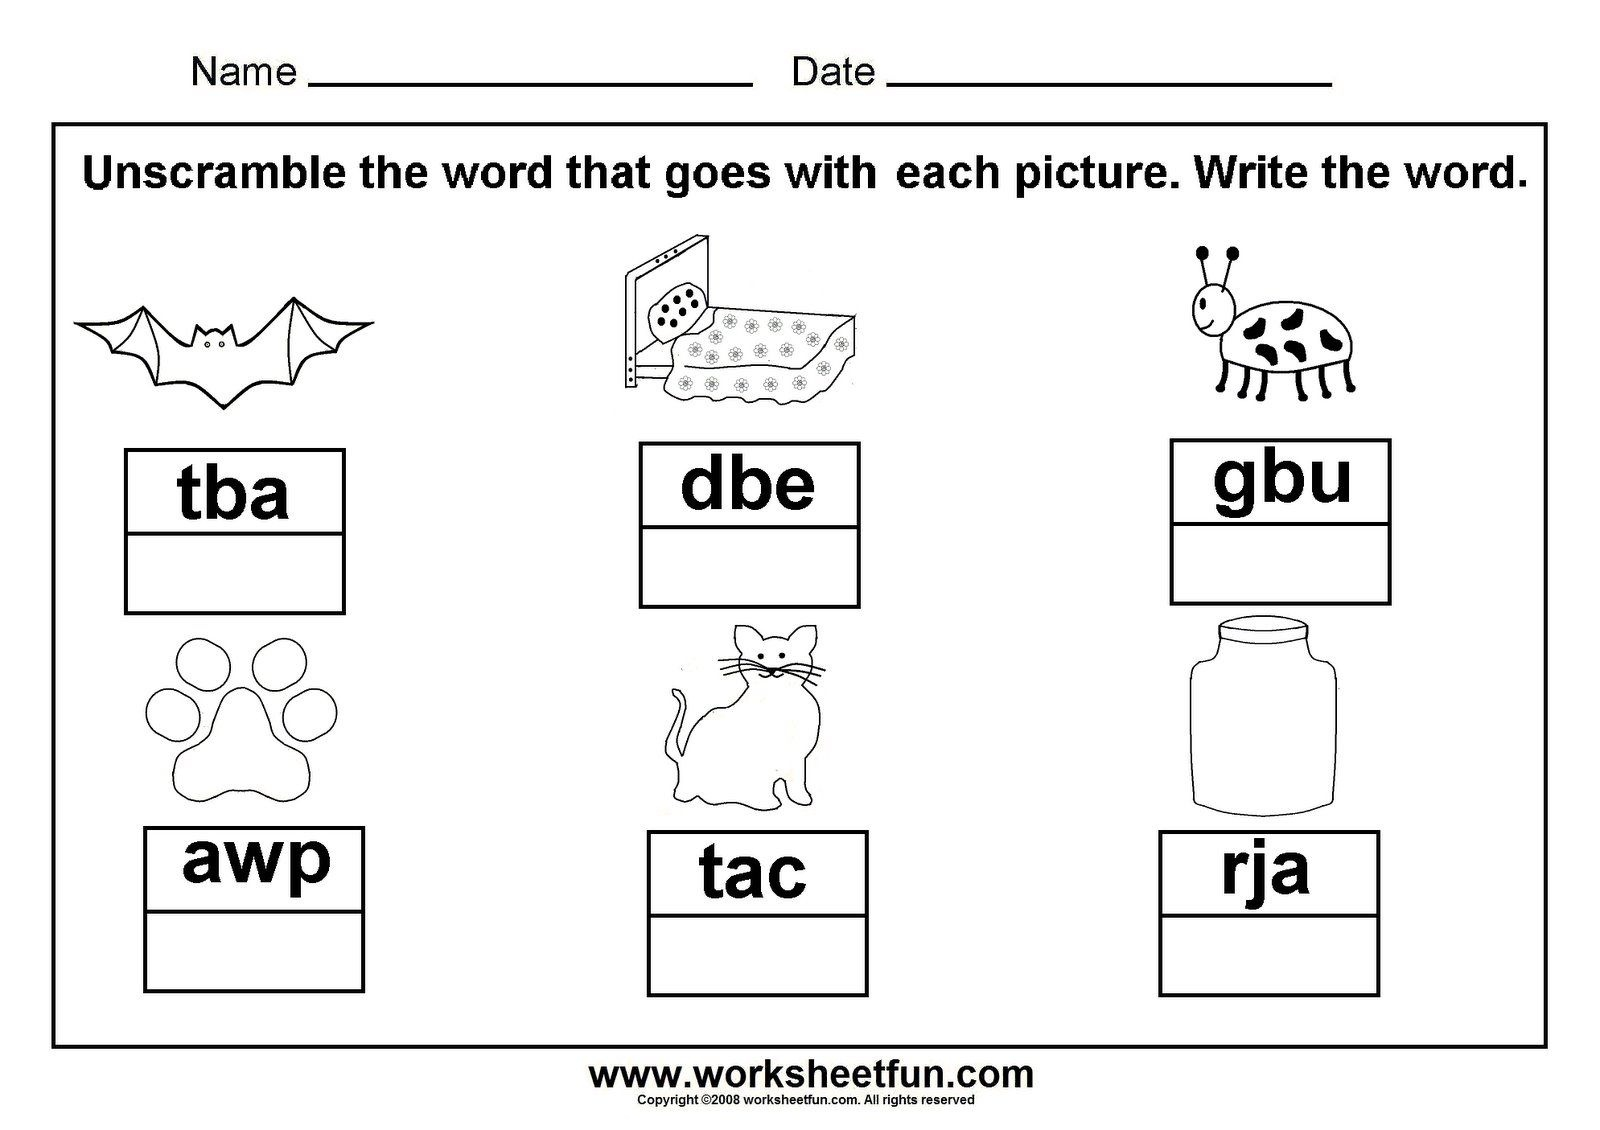 Unscramble Cvc Words; Great To Laminate And Put In A Word Work - Cvc Words Worksheets Free Printable